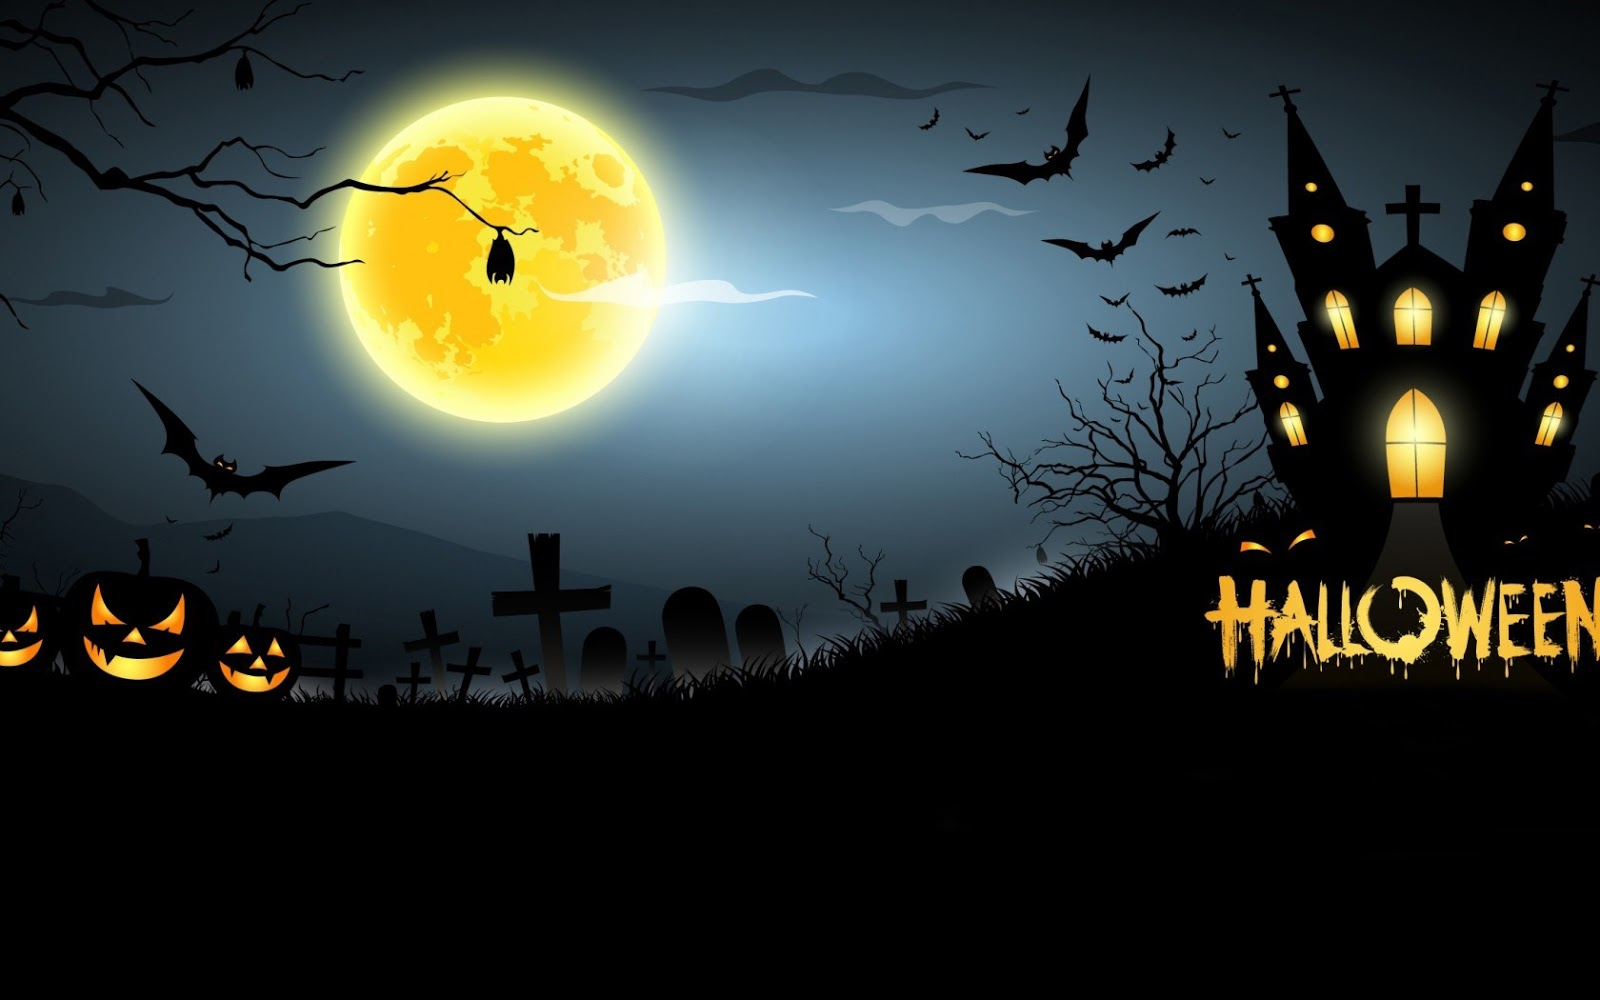 Halloween full moon hd wallpapers images pics for PC 1600x1000